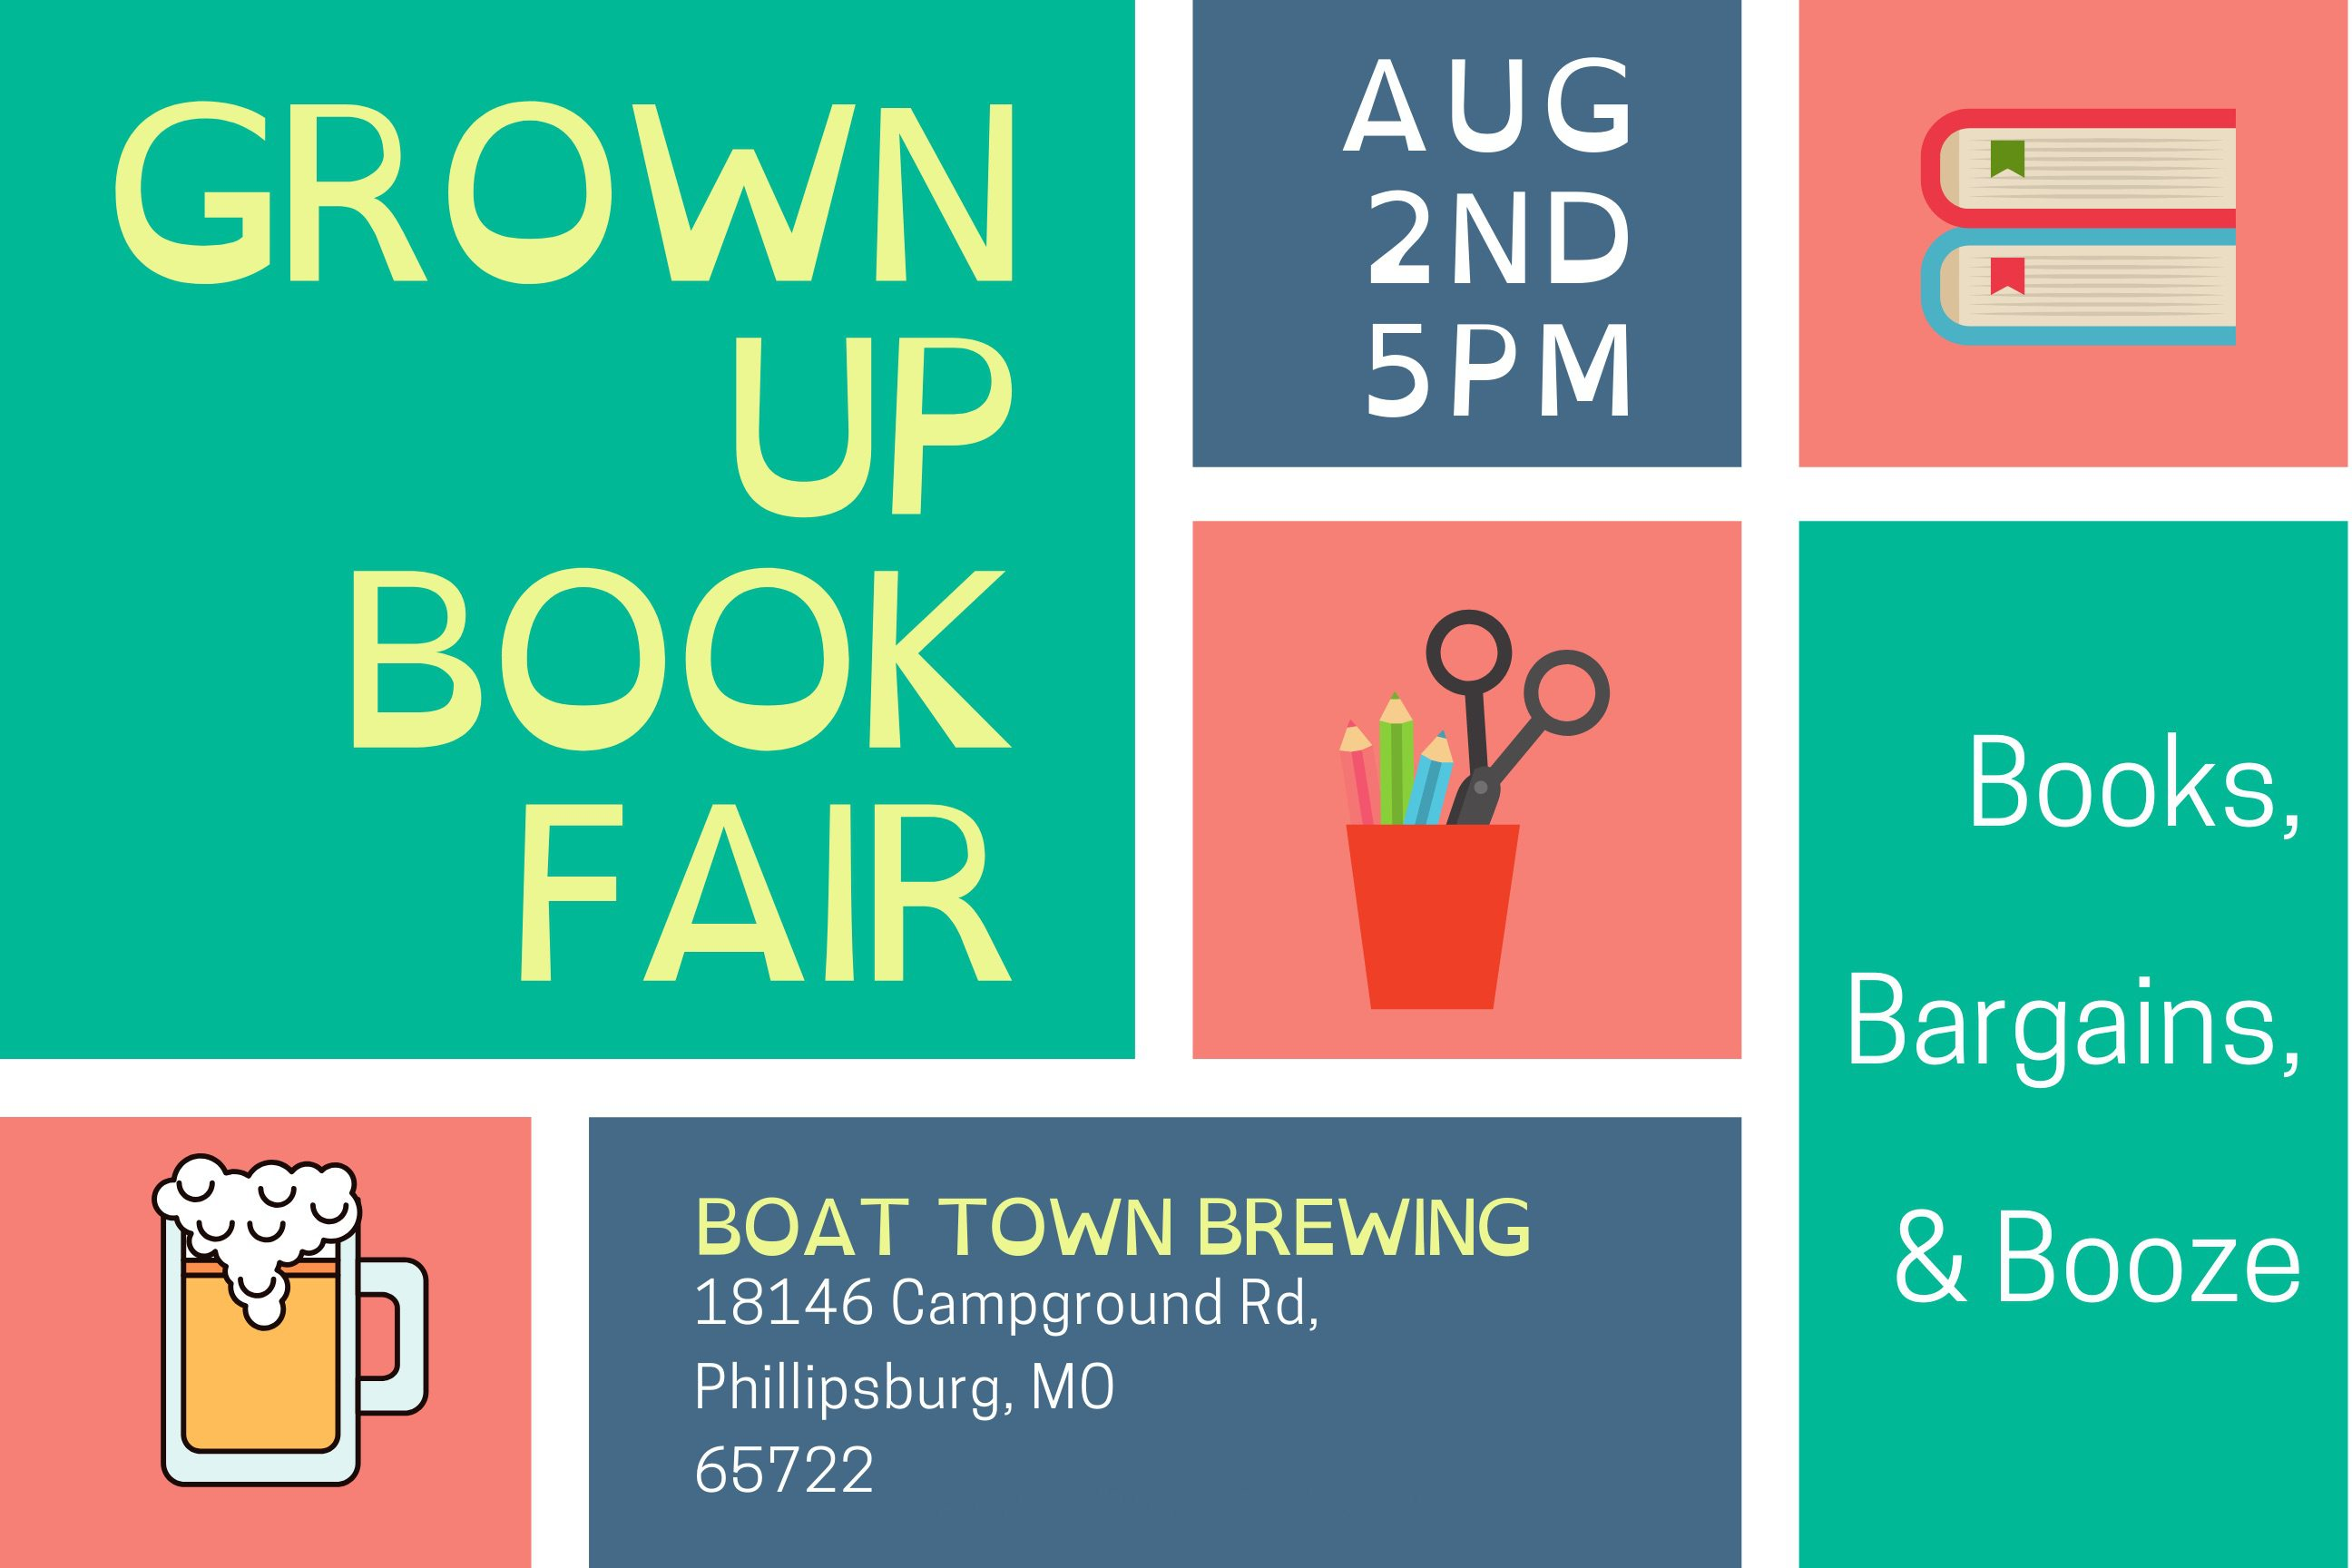 Grown Up Book Fair at Boat Town Brewing